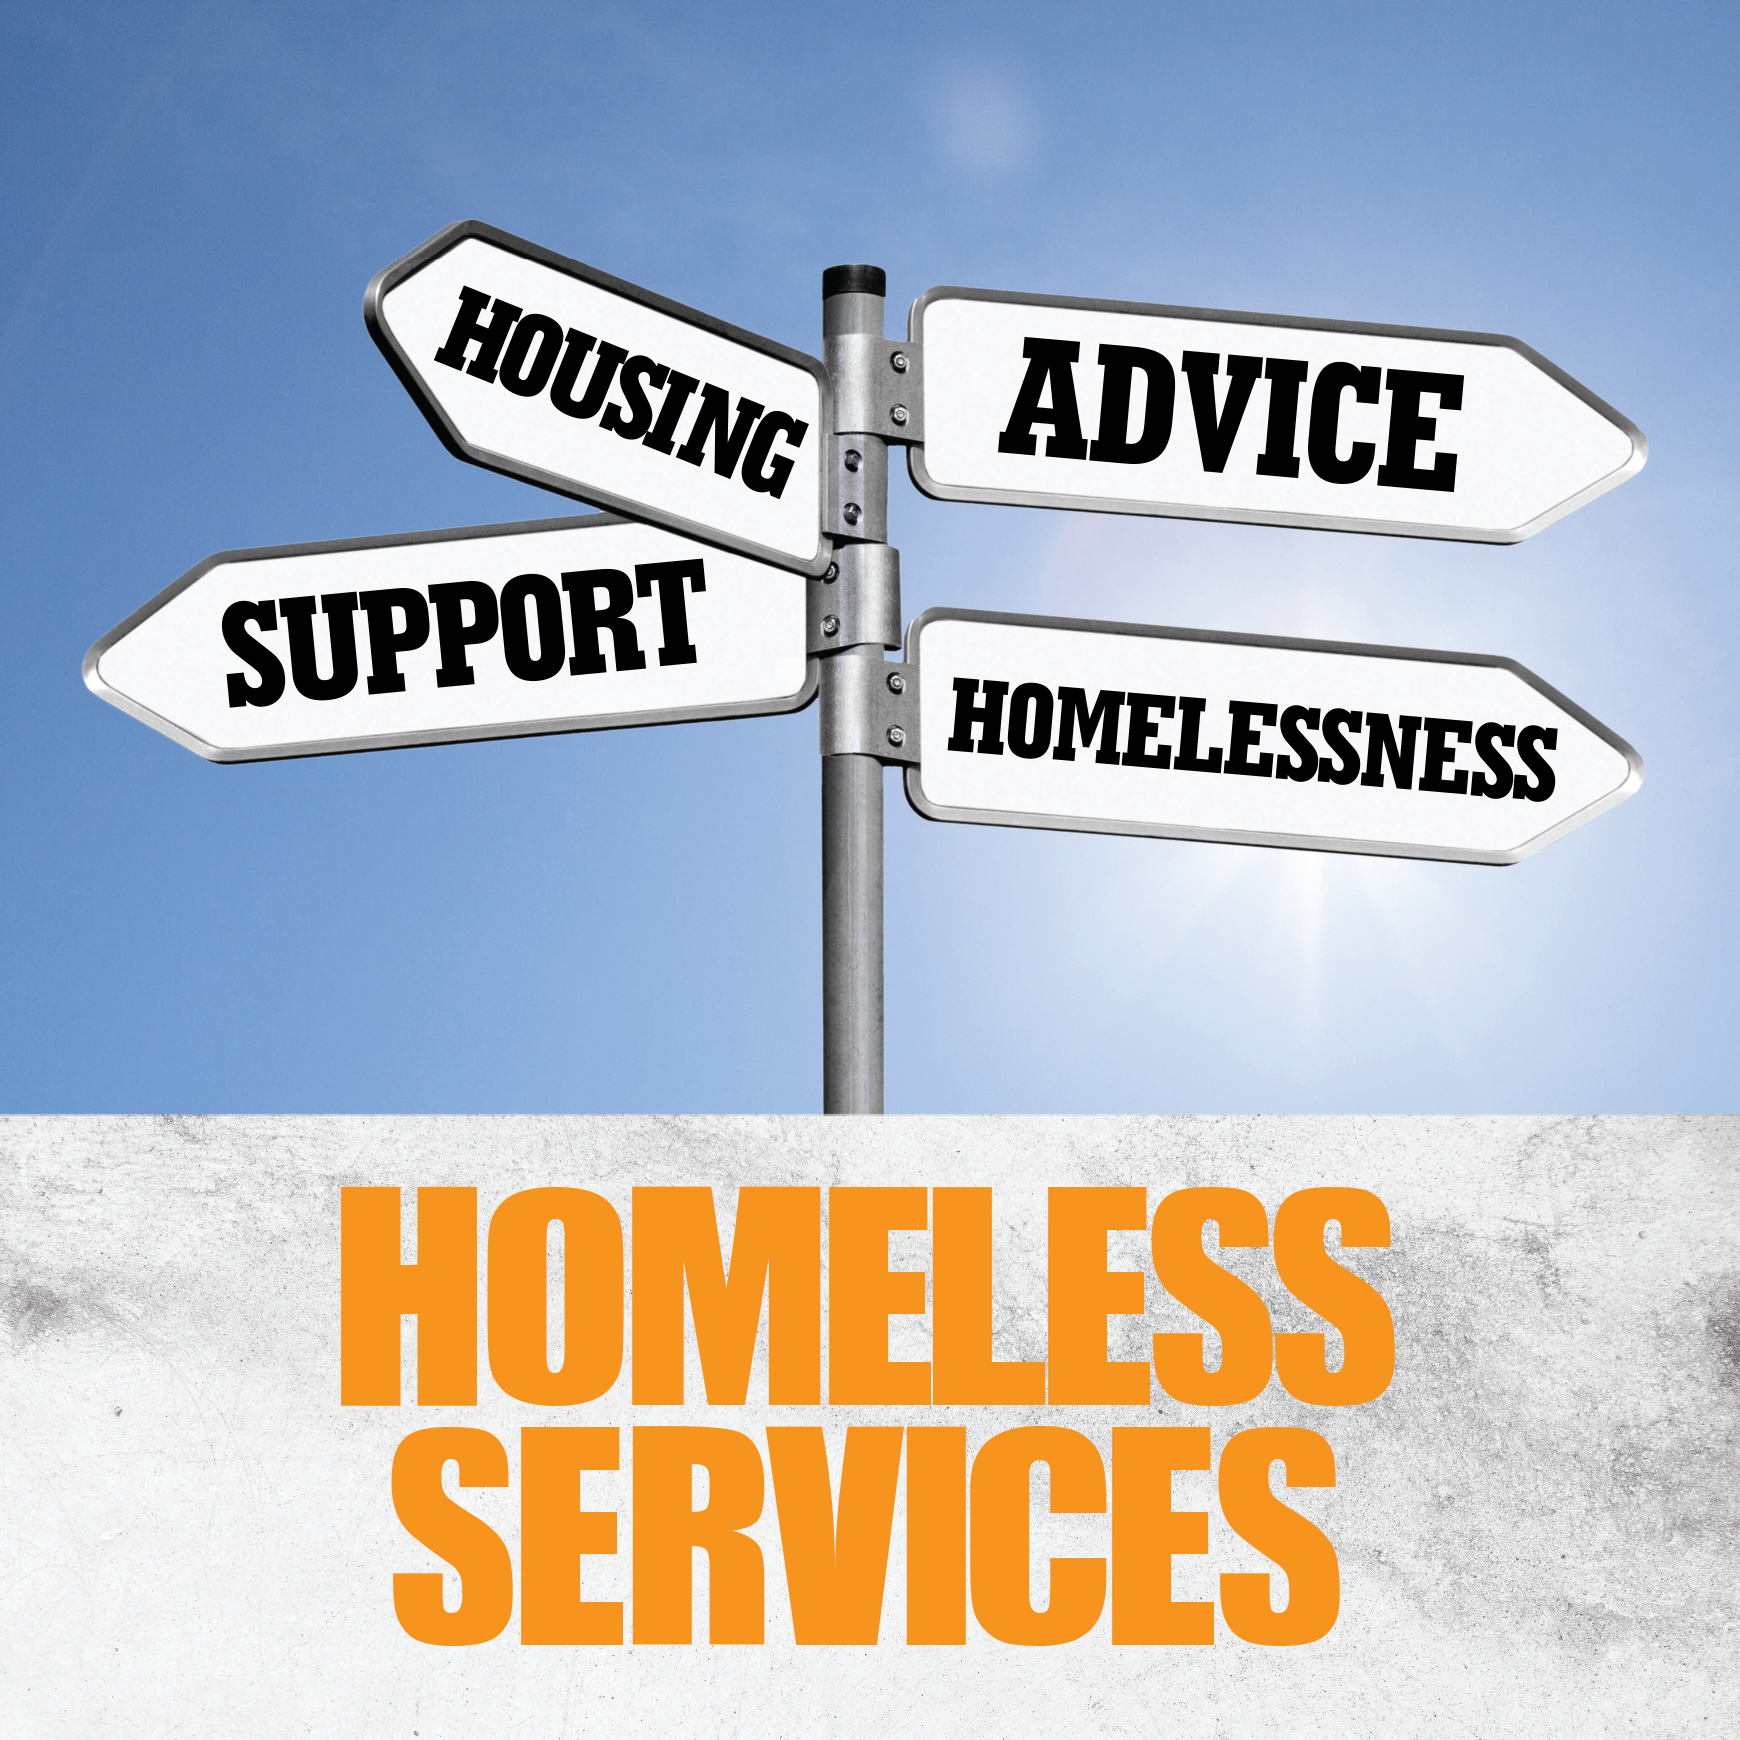 Image stating homeless service